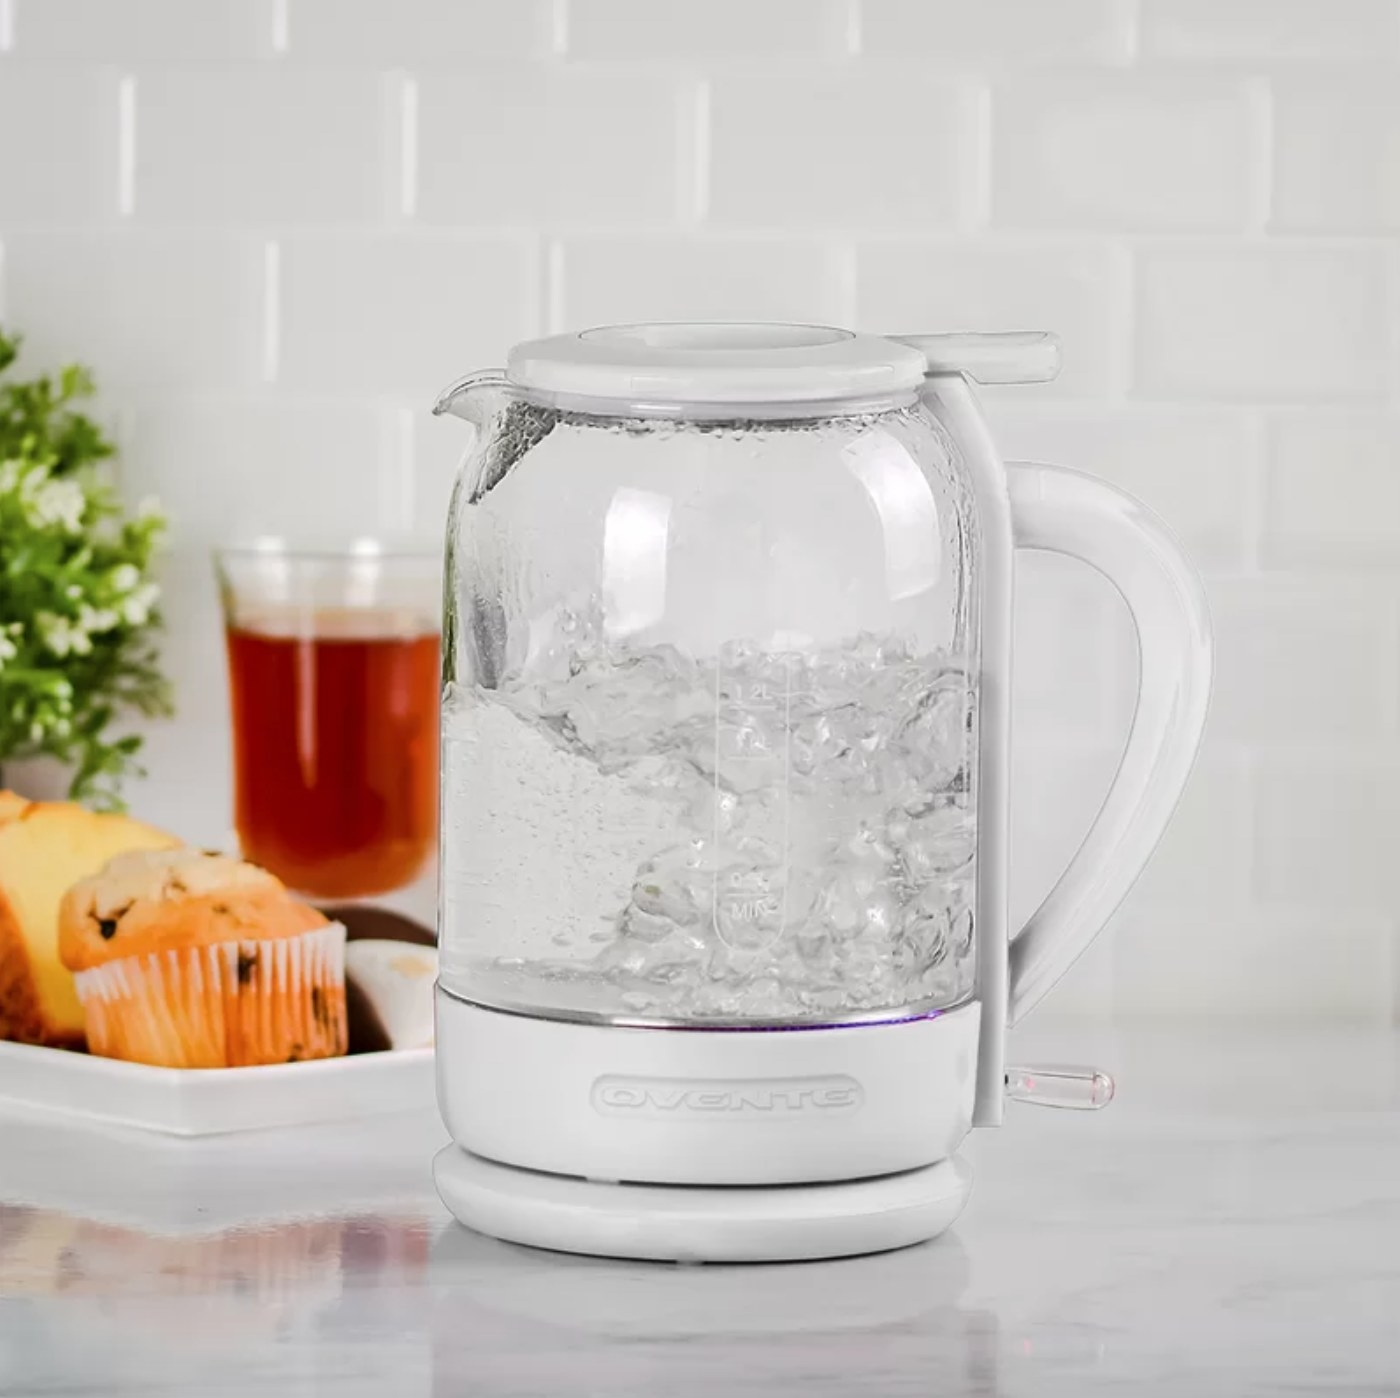 The electric glass tea kettle in white